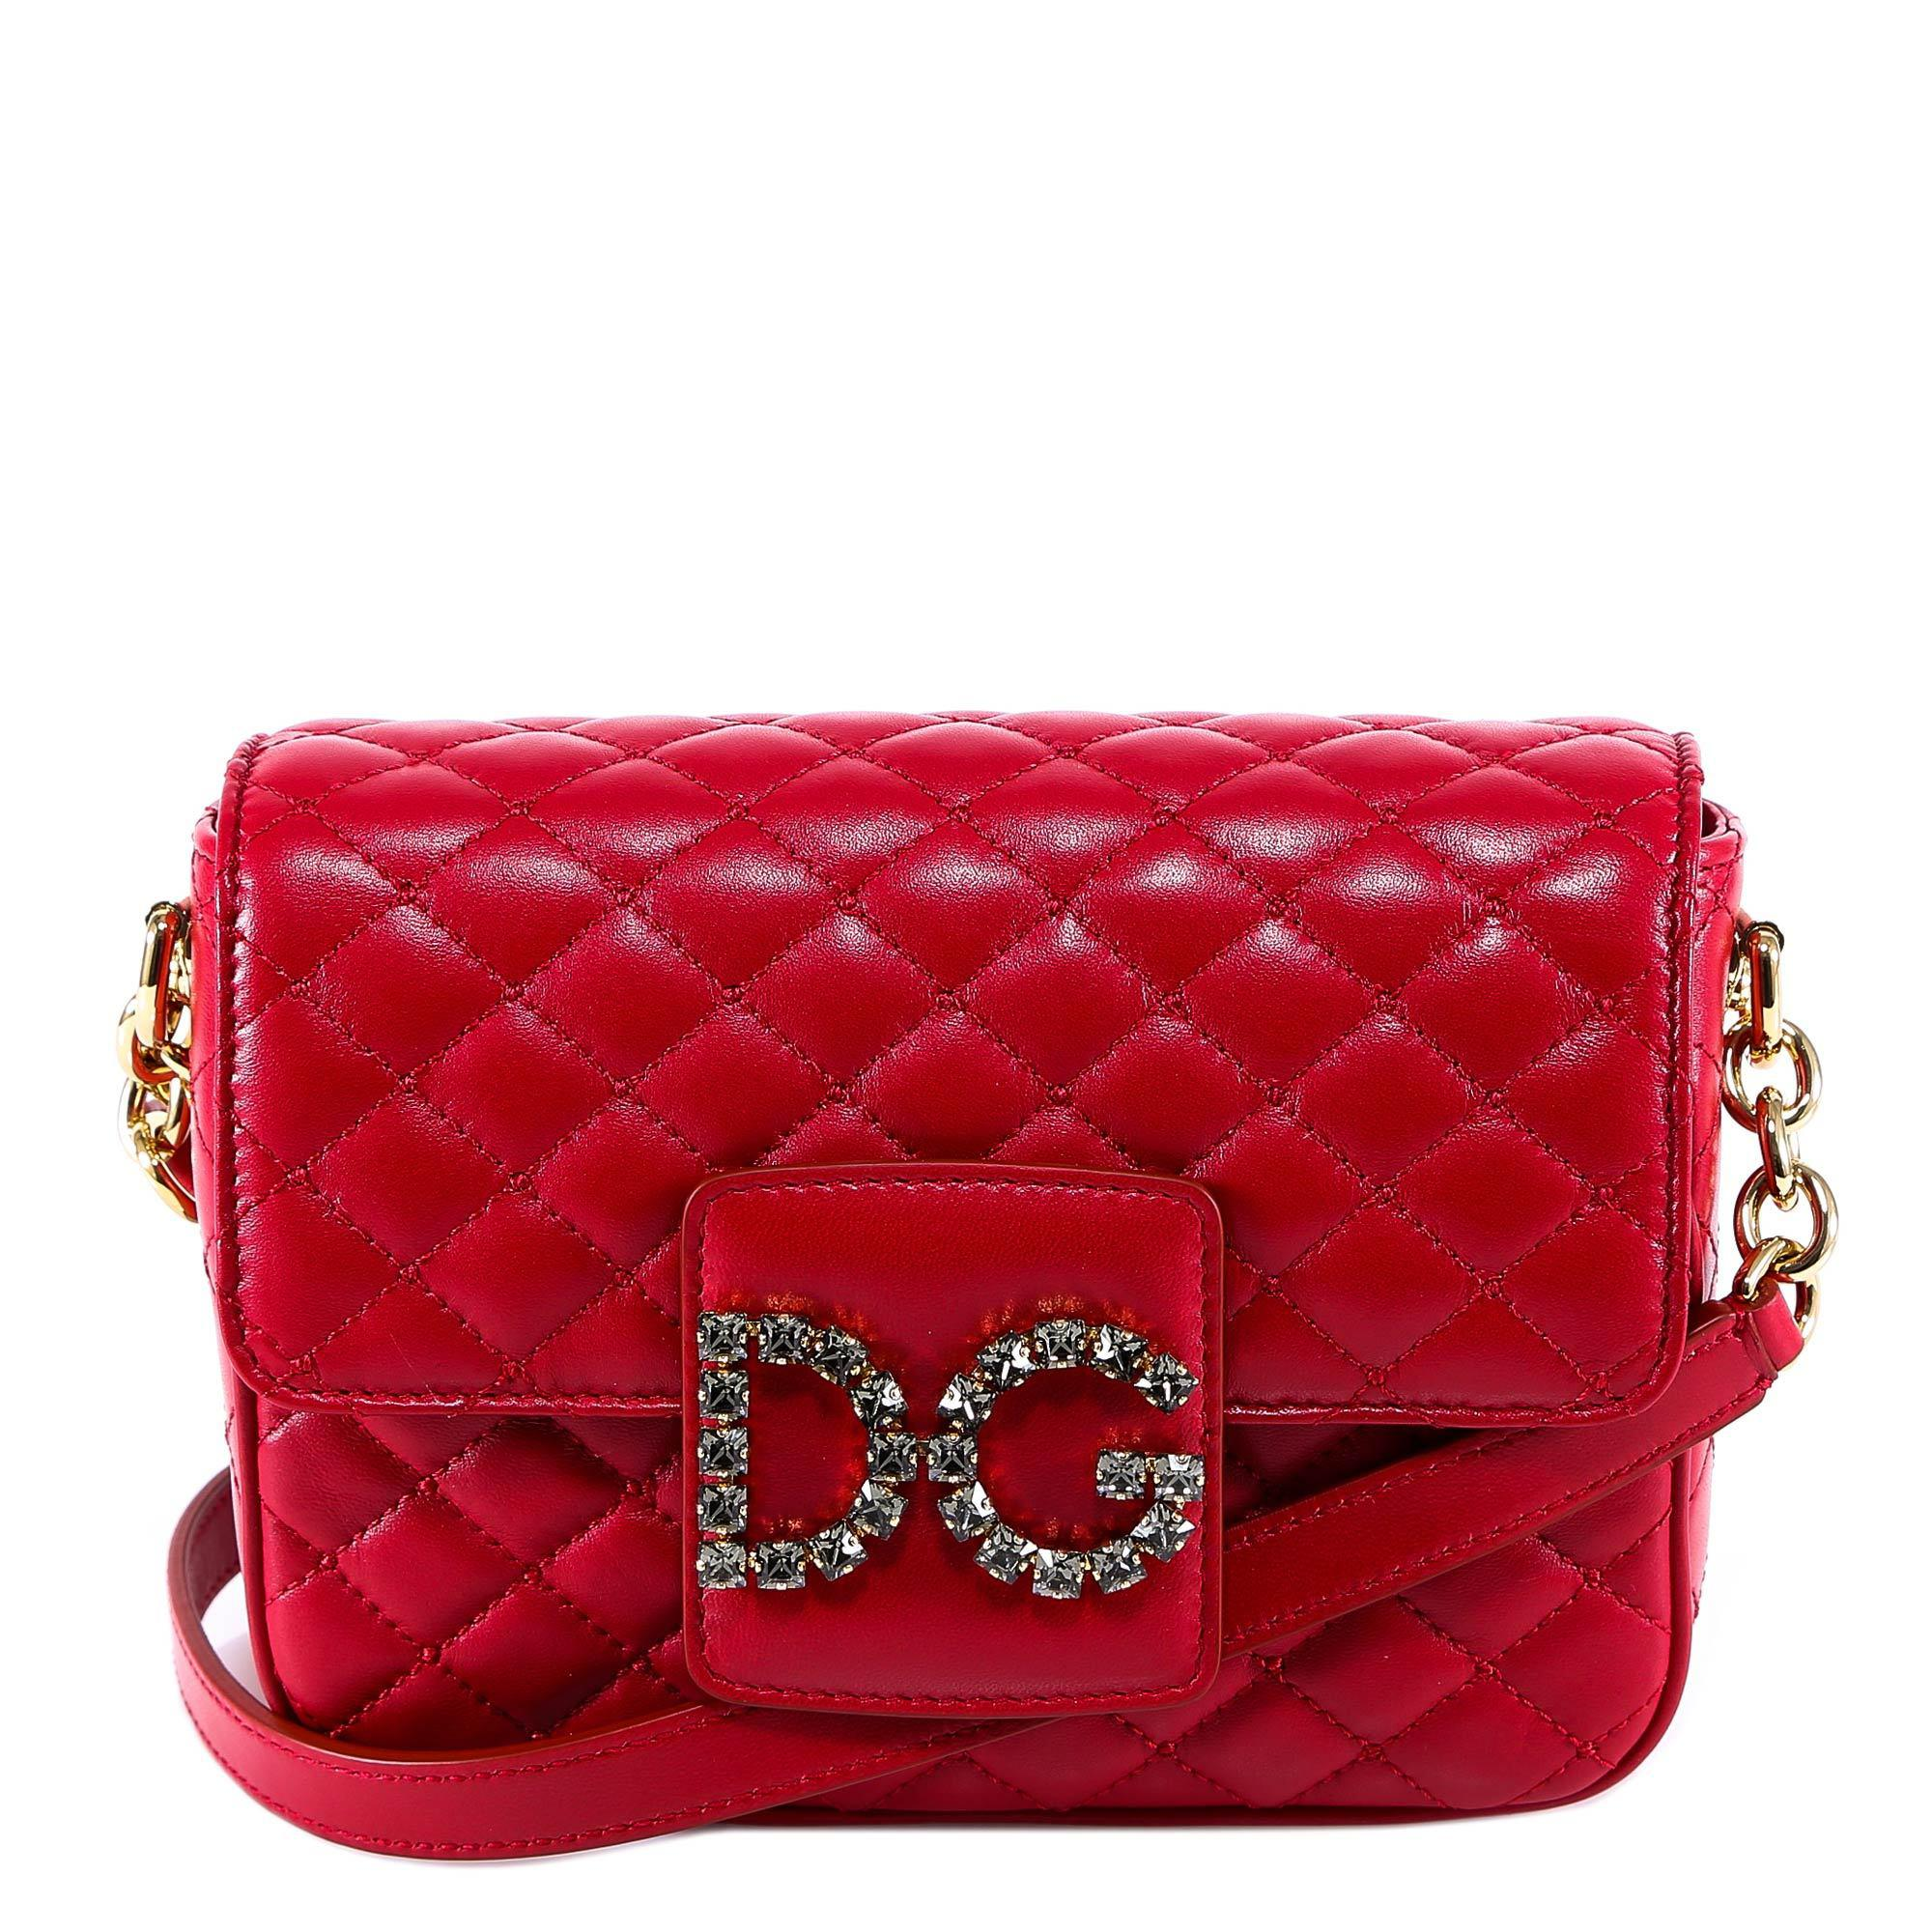 Lyst - Dolce   Gabbana Embellished Dg Quilted Shoulder Bag in Red 96e008ab7c49c